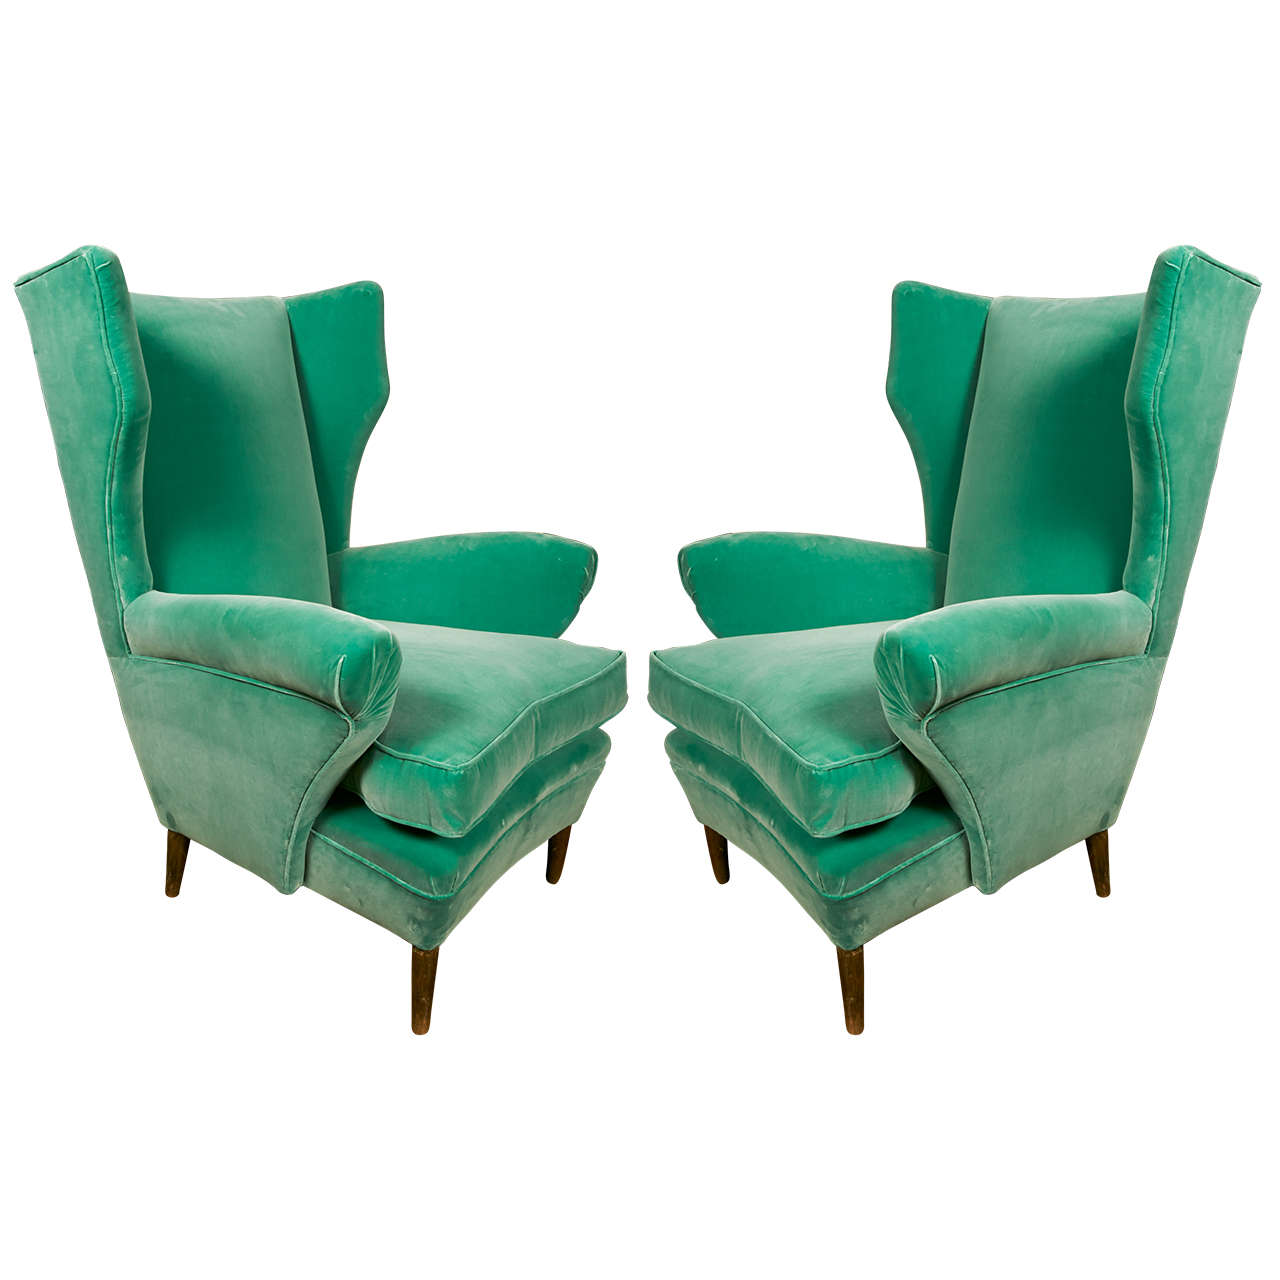 Comfortable Pair of Green Armchairs with Rubelli Velvet Upholstery, Italy, 1960